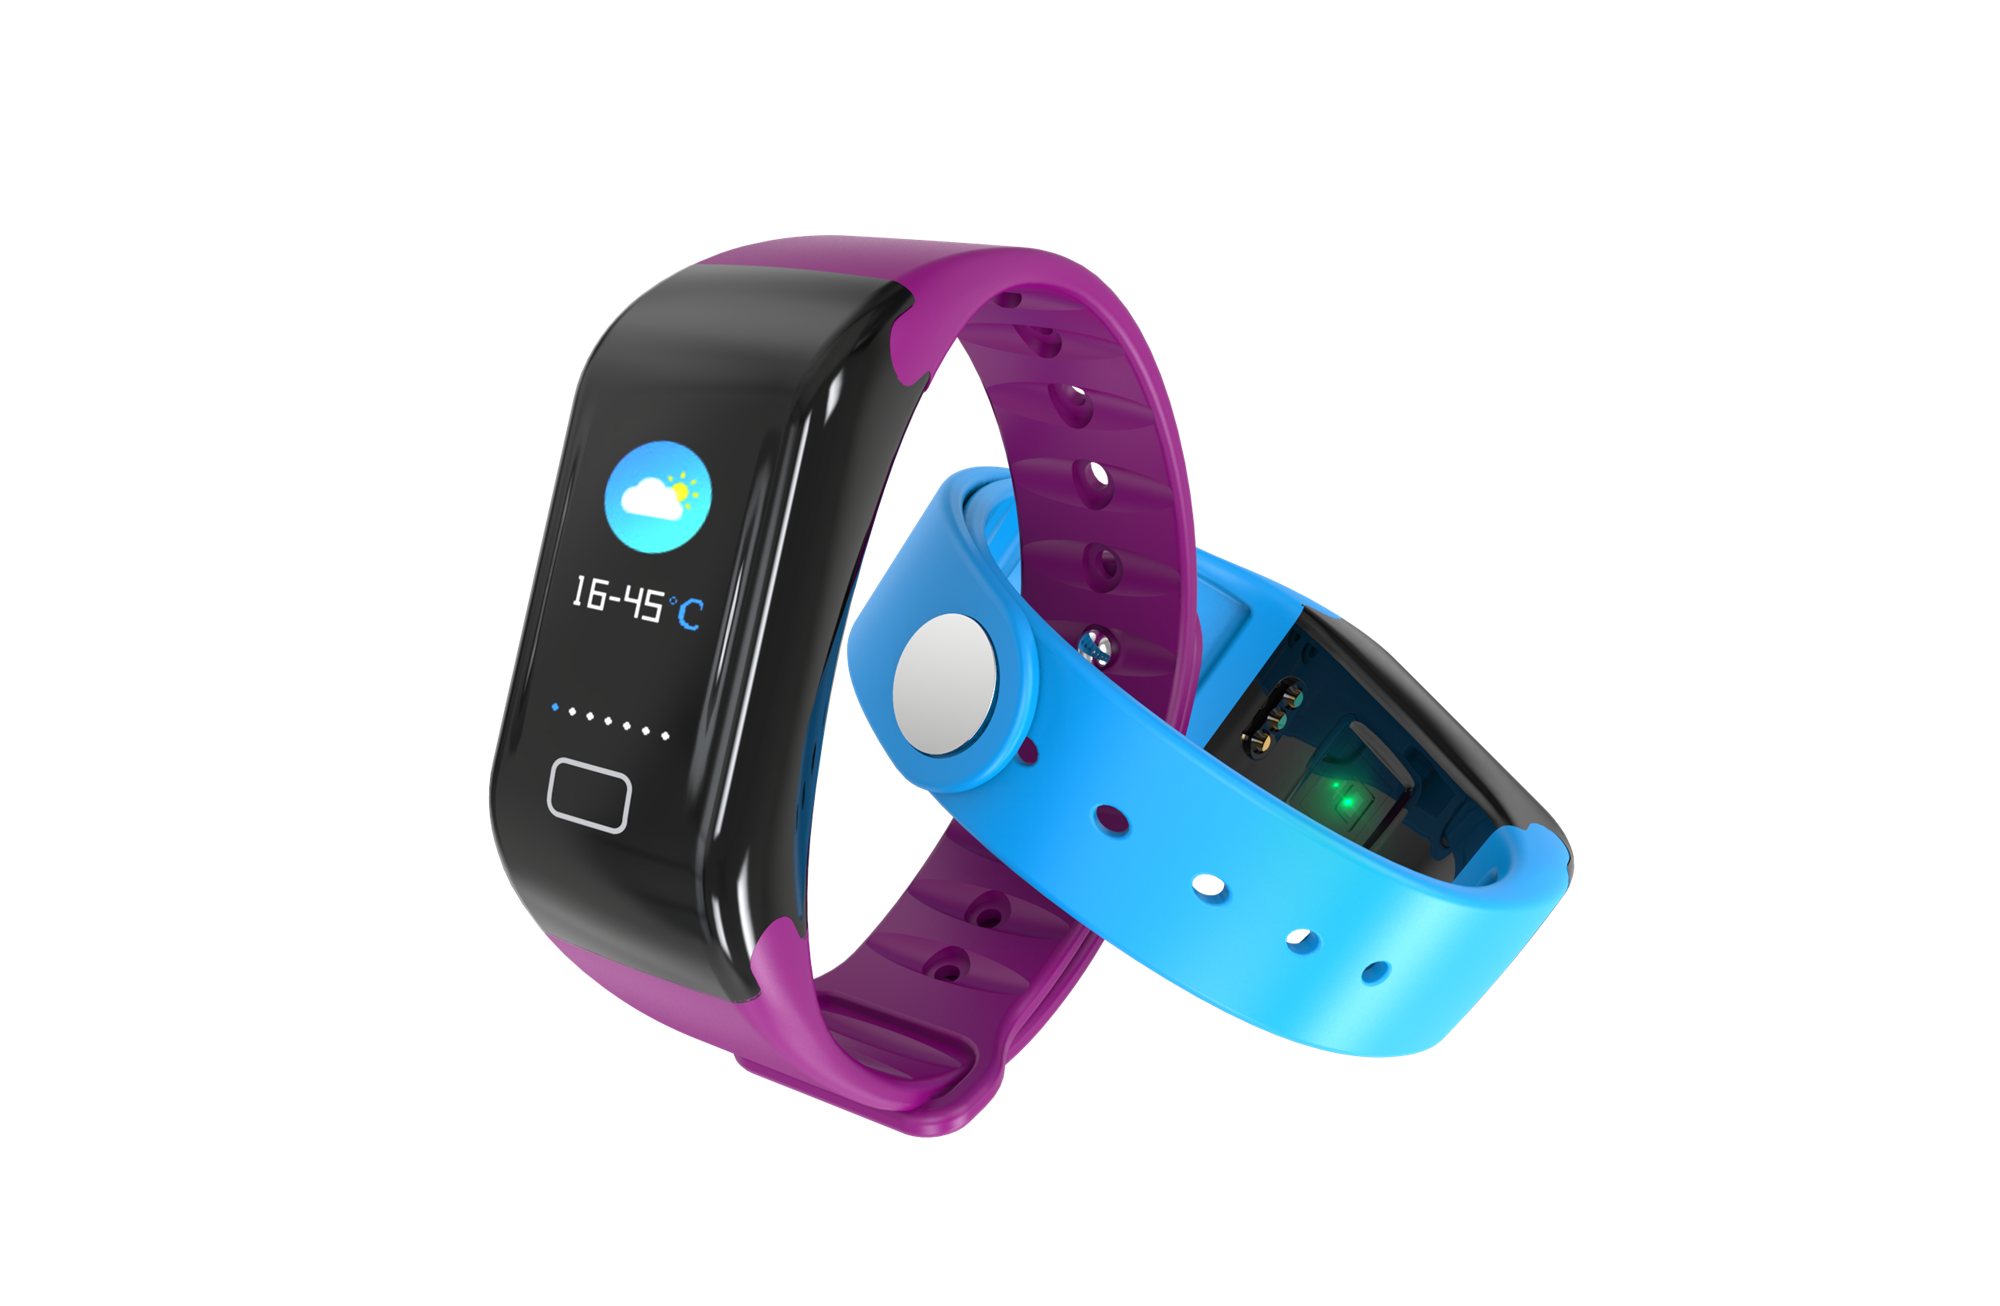 watches and why what buy homnick tracking fitness tracker article mike image activity pcworld to how wristbands orig